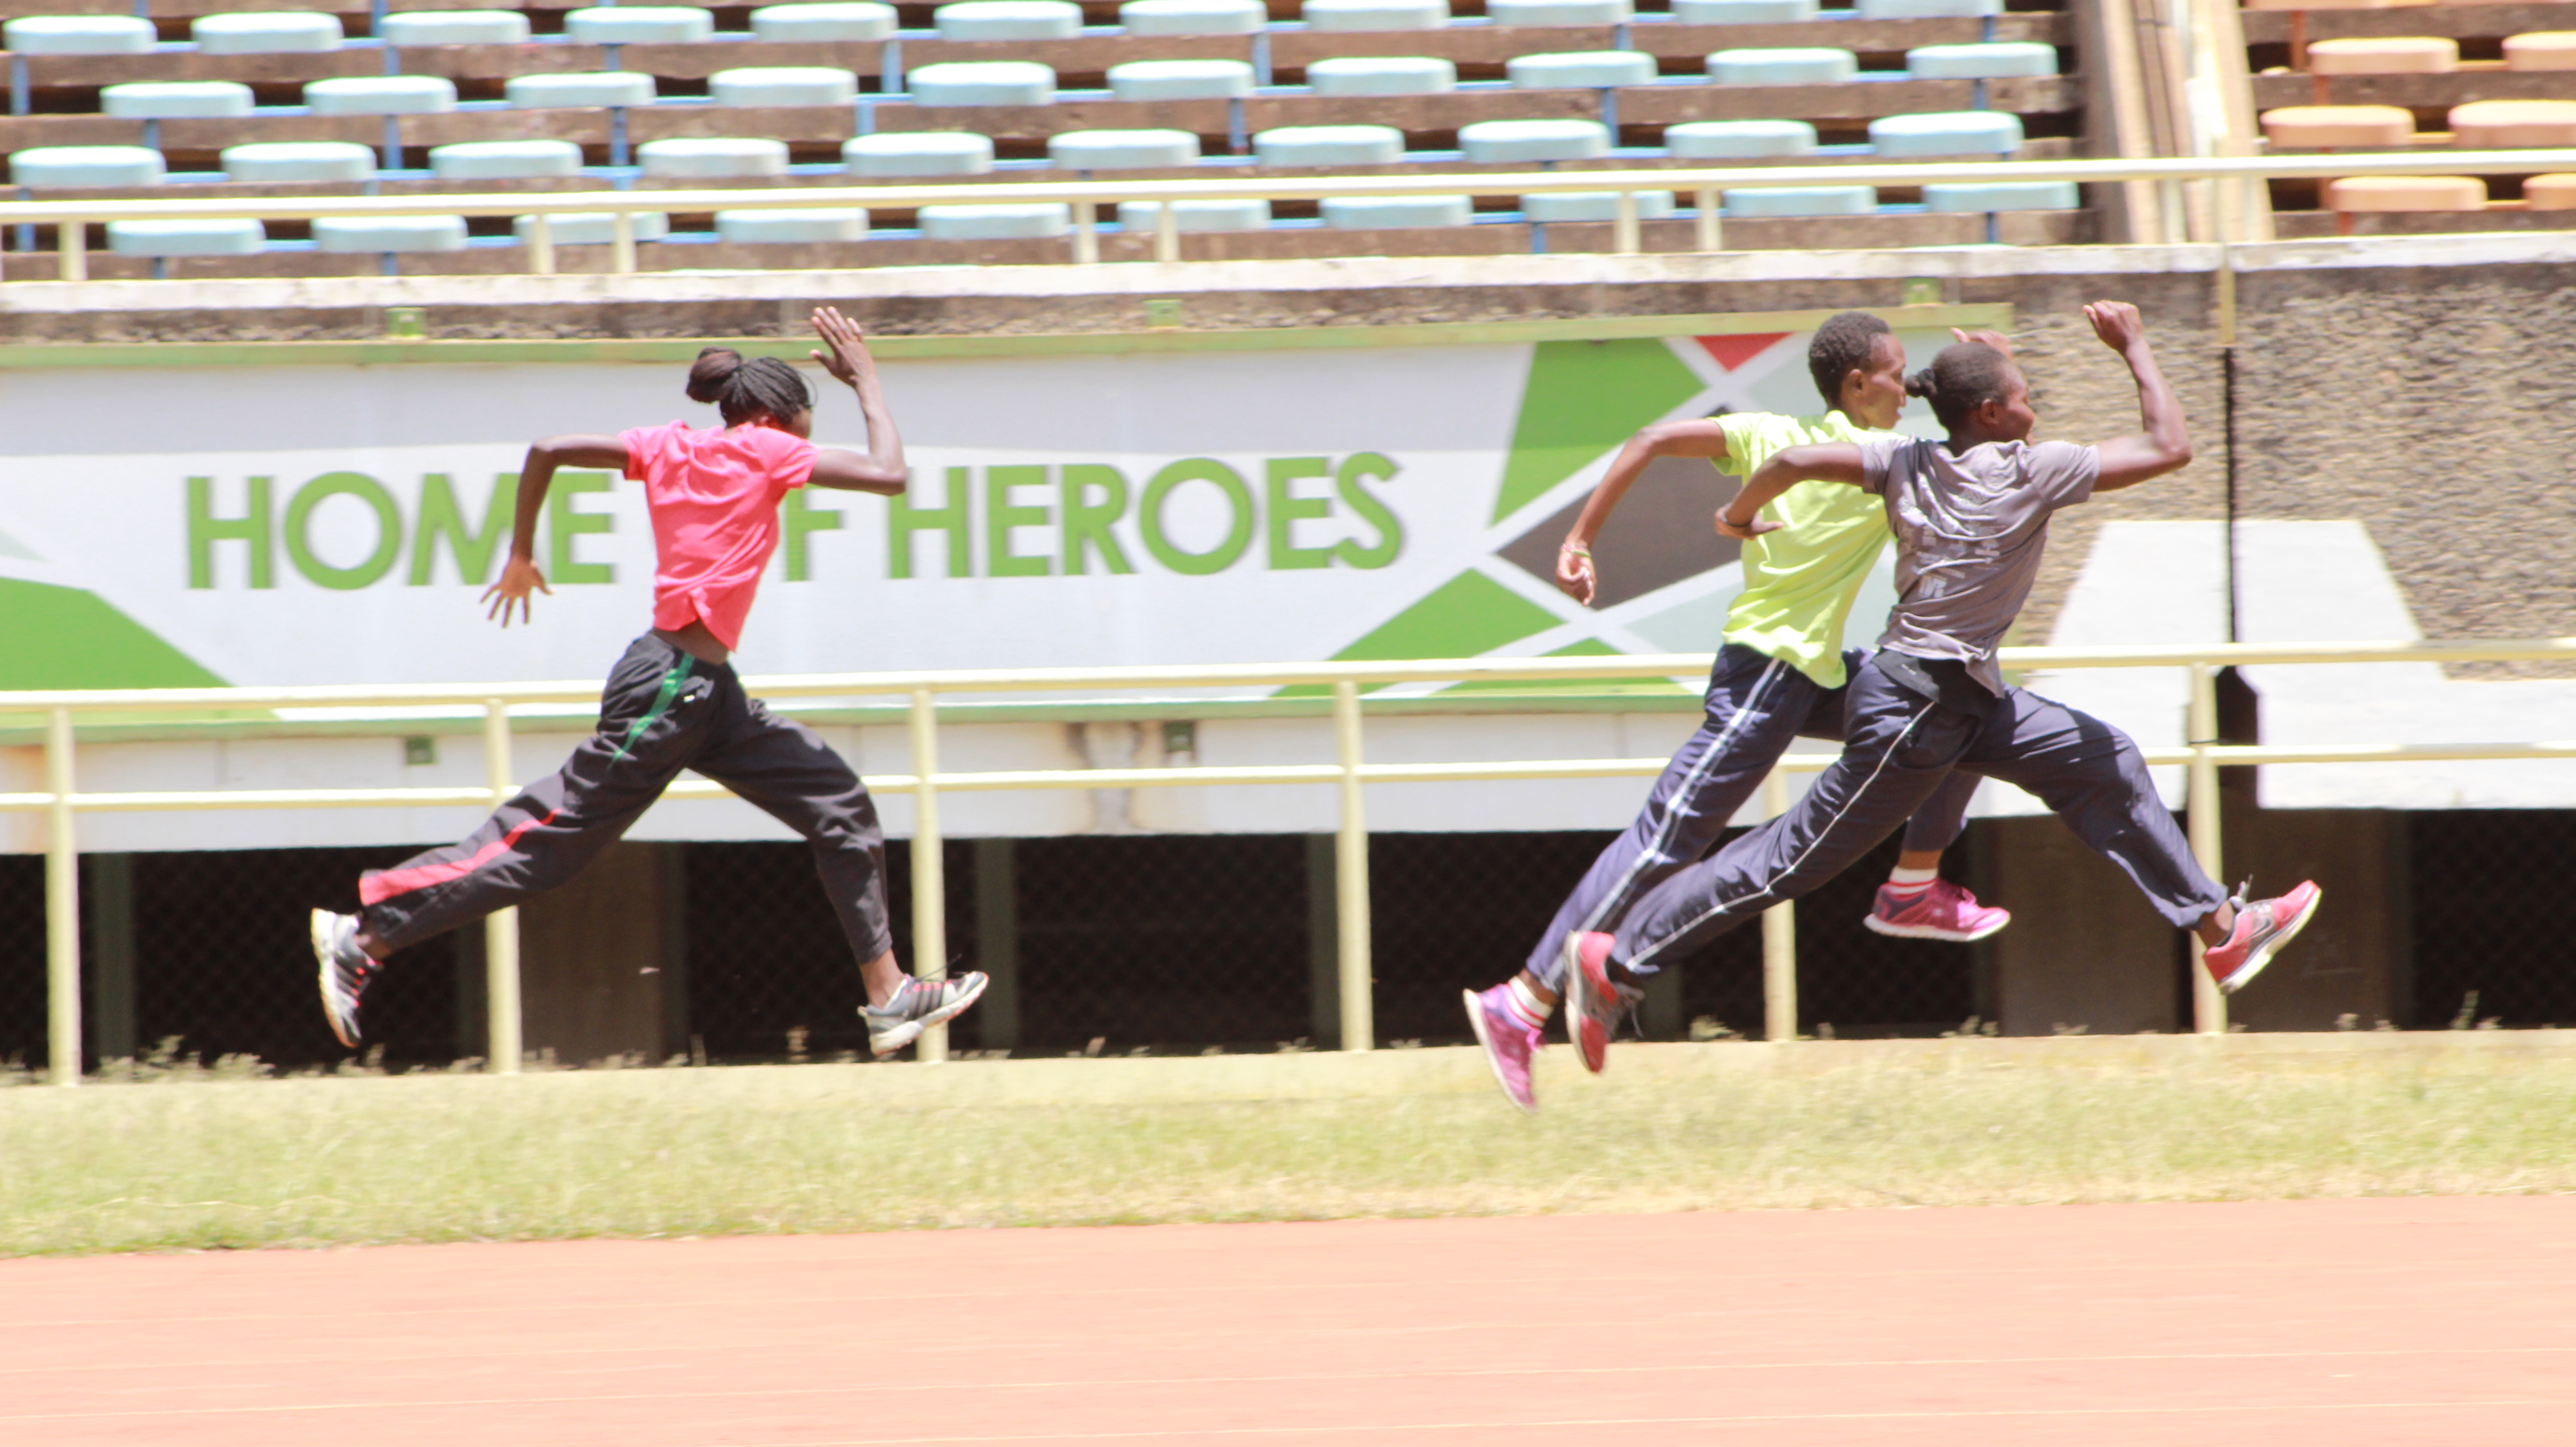 Nairobi's Moi International Sports Center is undergoing renovation in preparation for the championships. Above the din, athletes perfect their skills. (L. Ruvaga/VOA)